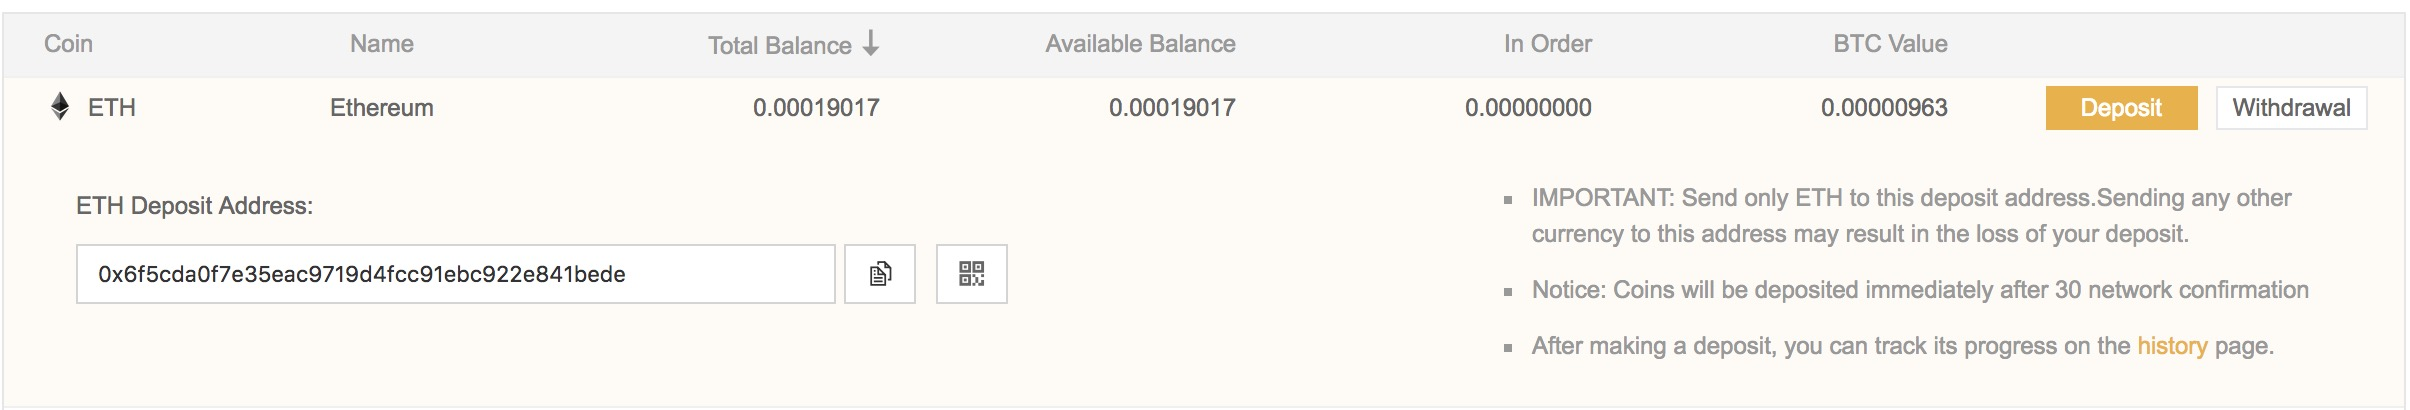 binace ethereum deposit